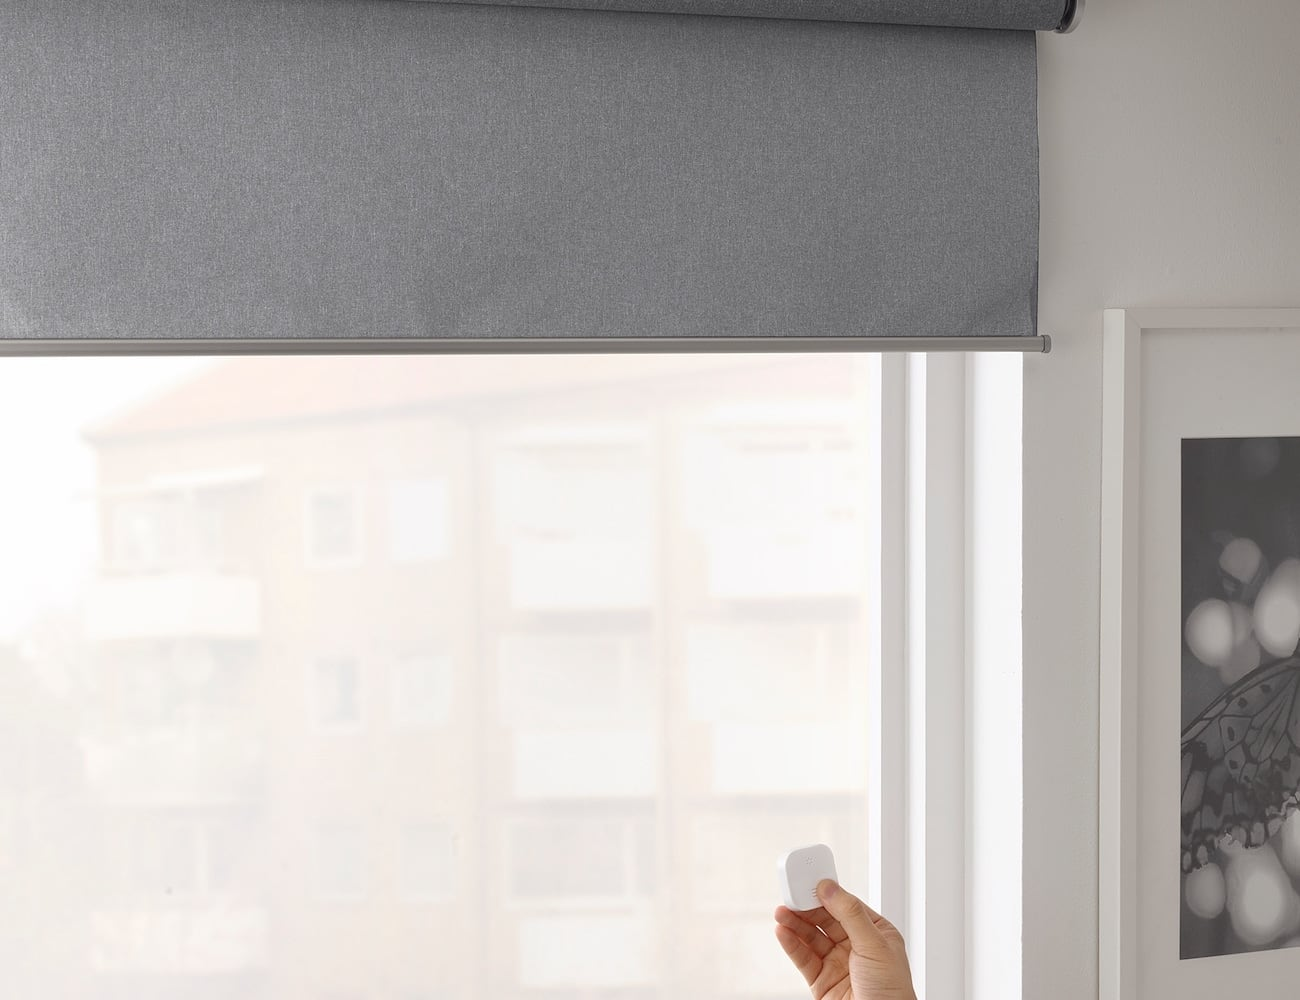 Ikea Smart Window Blinds